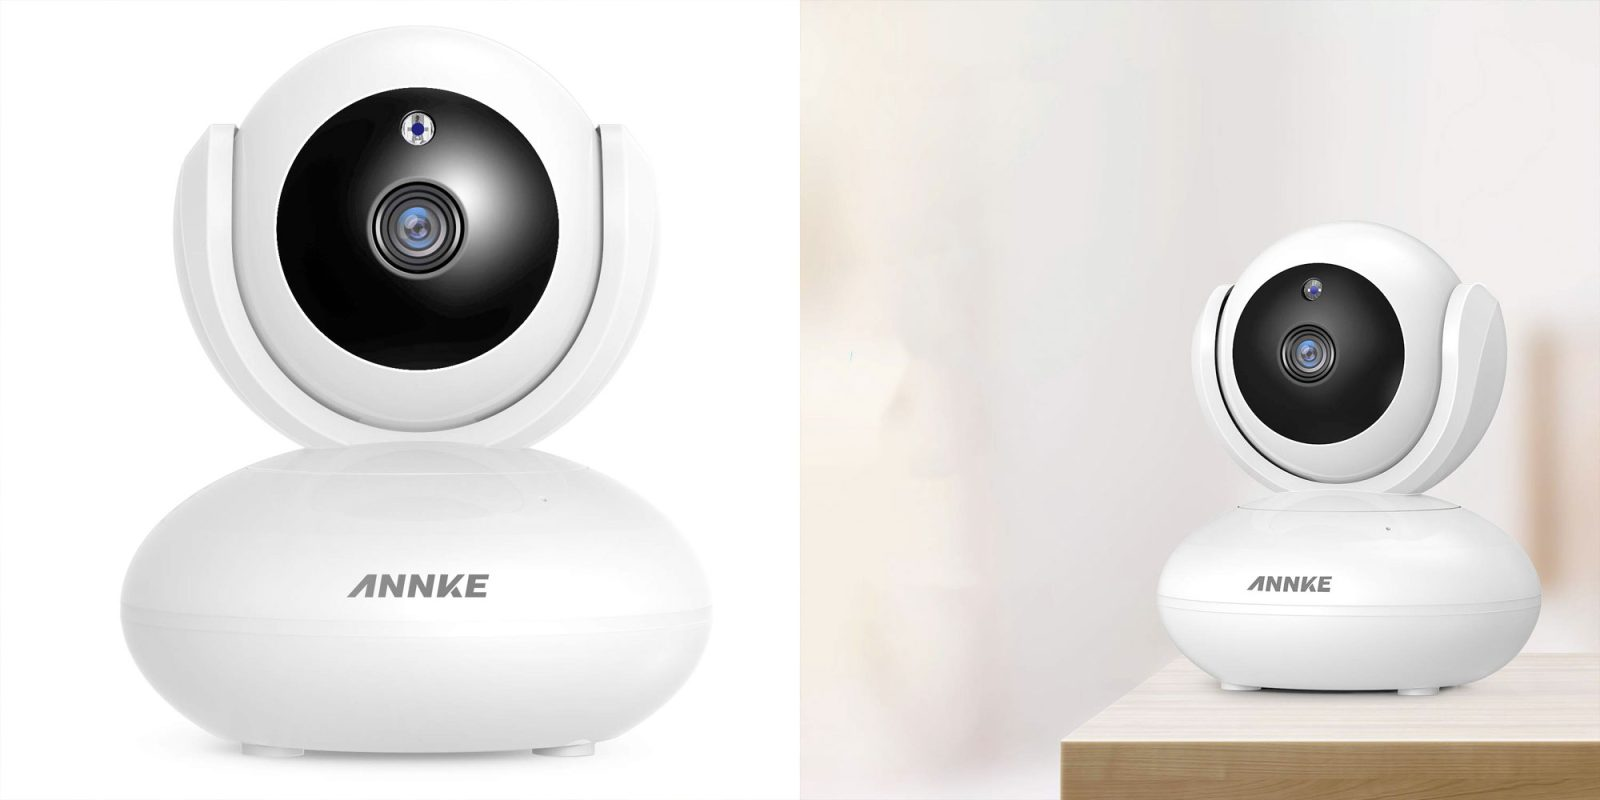 Save 45% on ANNKE's 1080p pan/tilt Wi-Fi security camera, now $24 (Reg. $45)